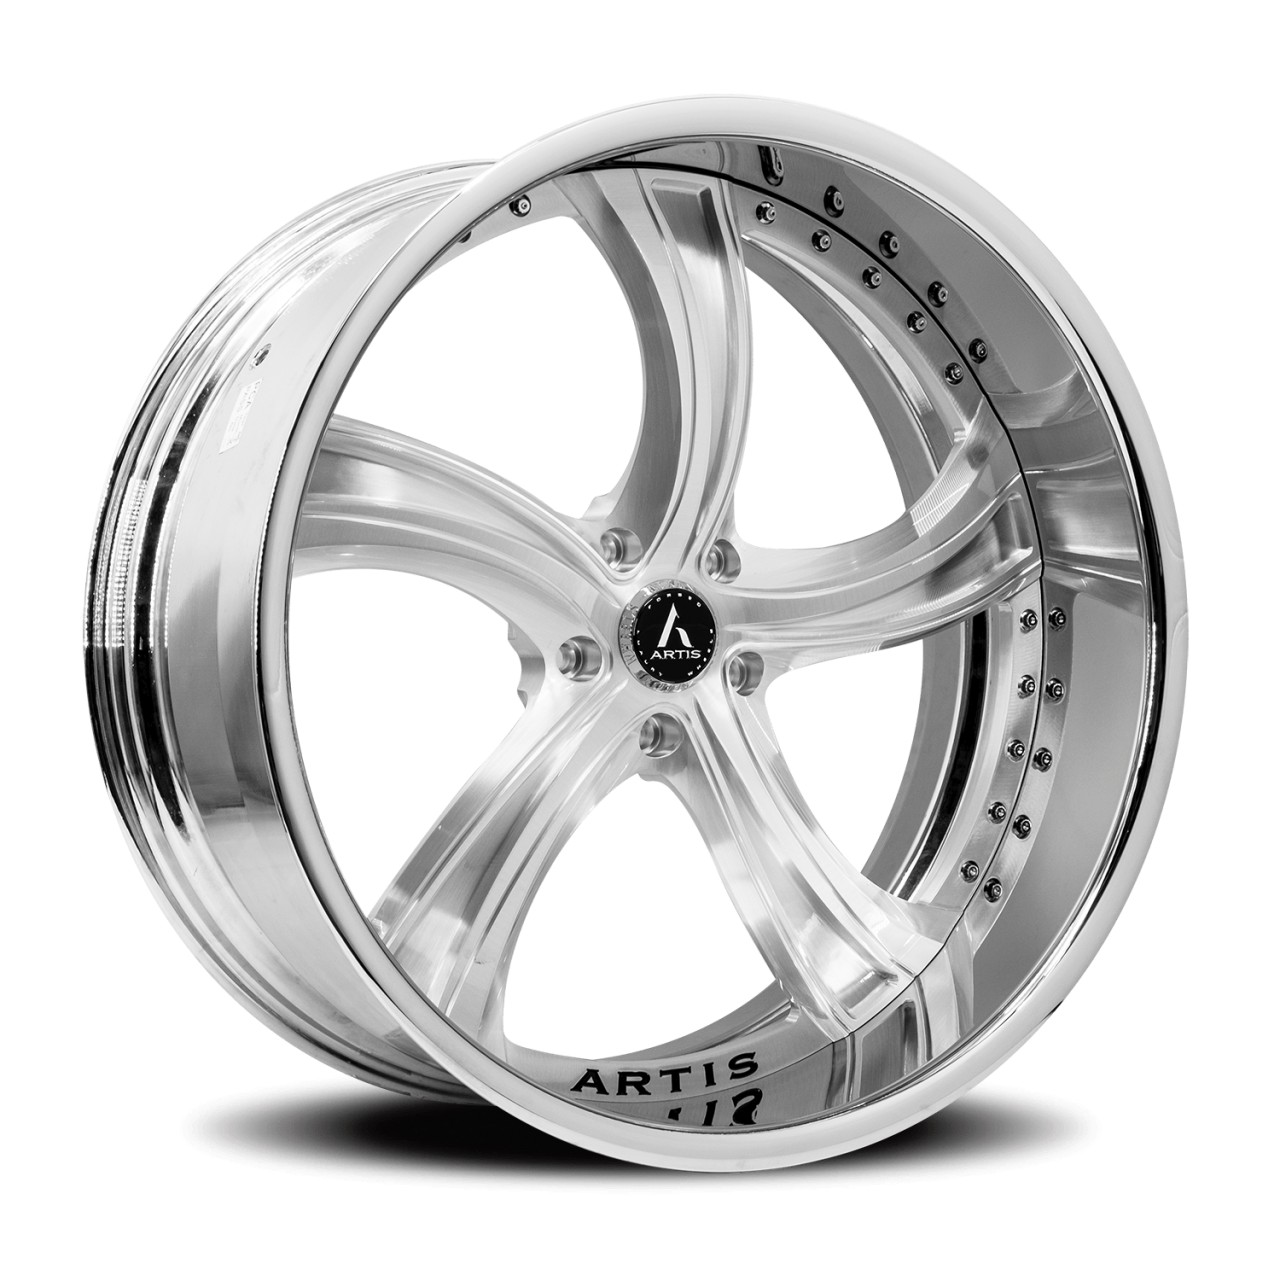 Artis Forged Kokomo wheel with Brushed finish